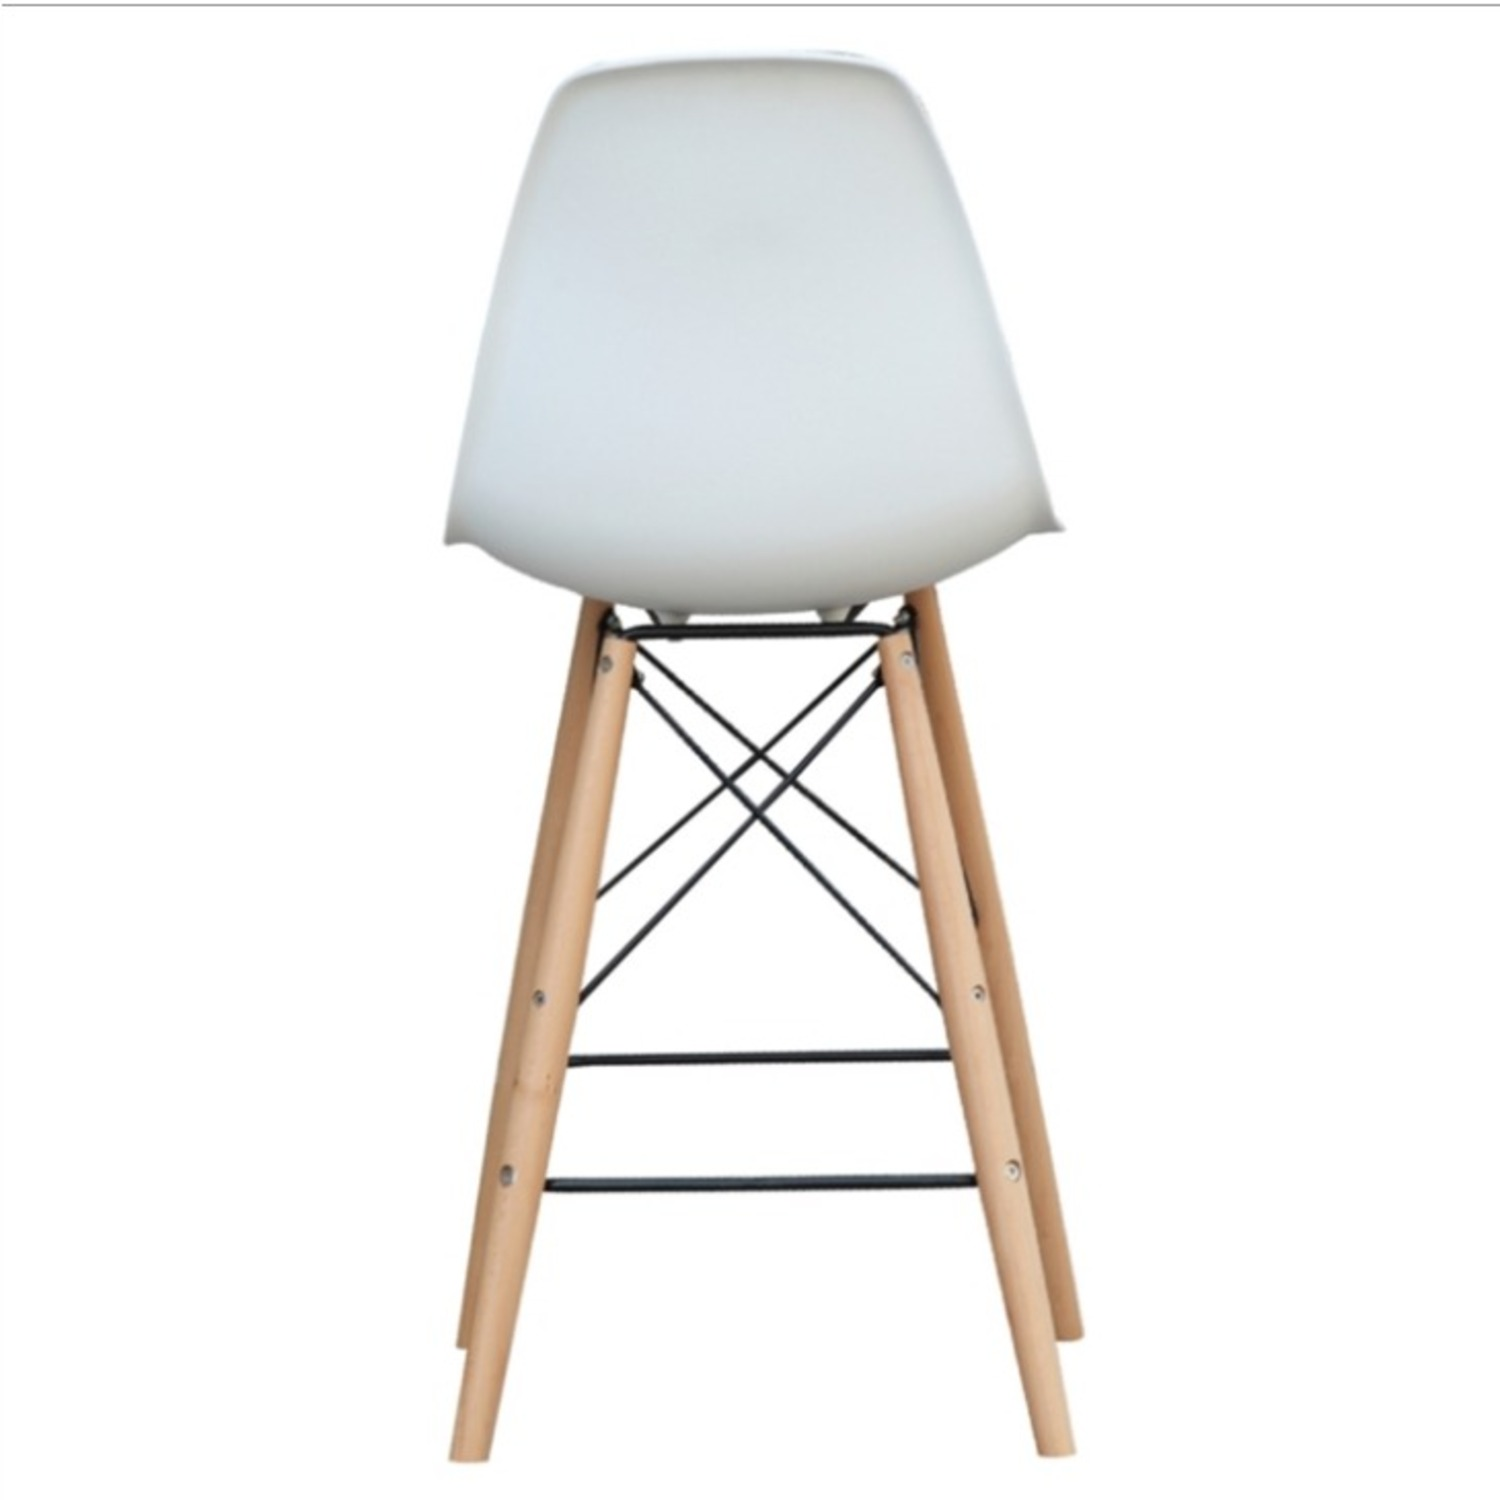 Counter Chair In White ABS Seat W/ Square Base - image-2